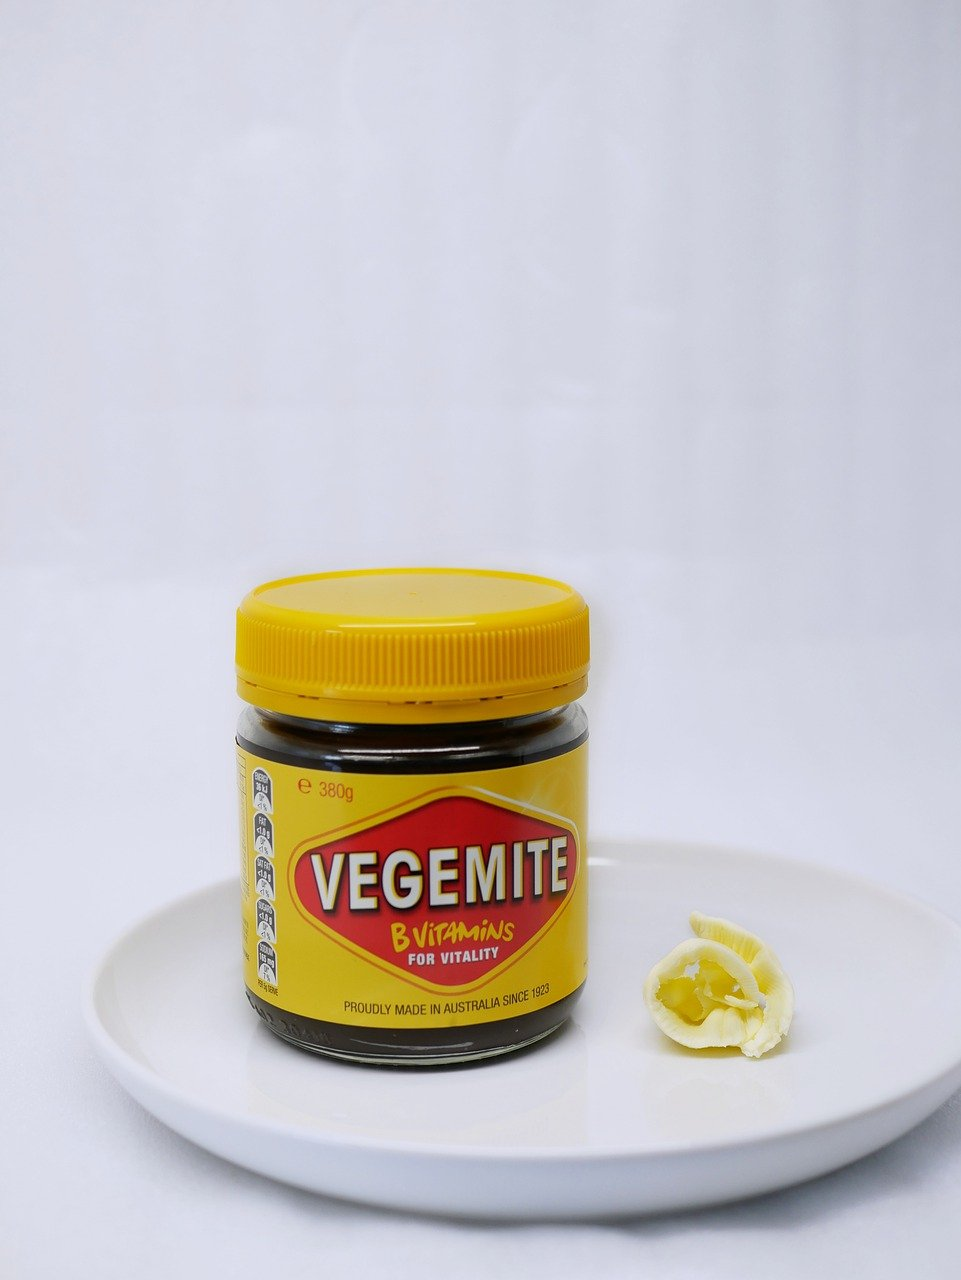 Vegemite is one of the most iconic Australian food. Discover 12 Australian dishes to try